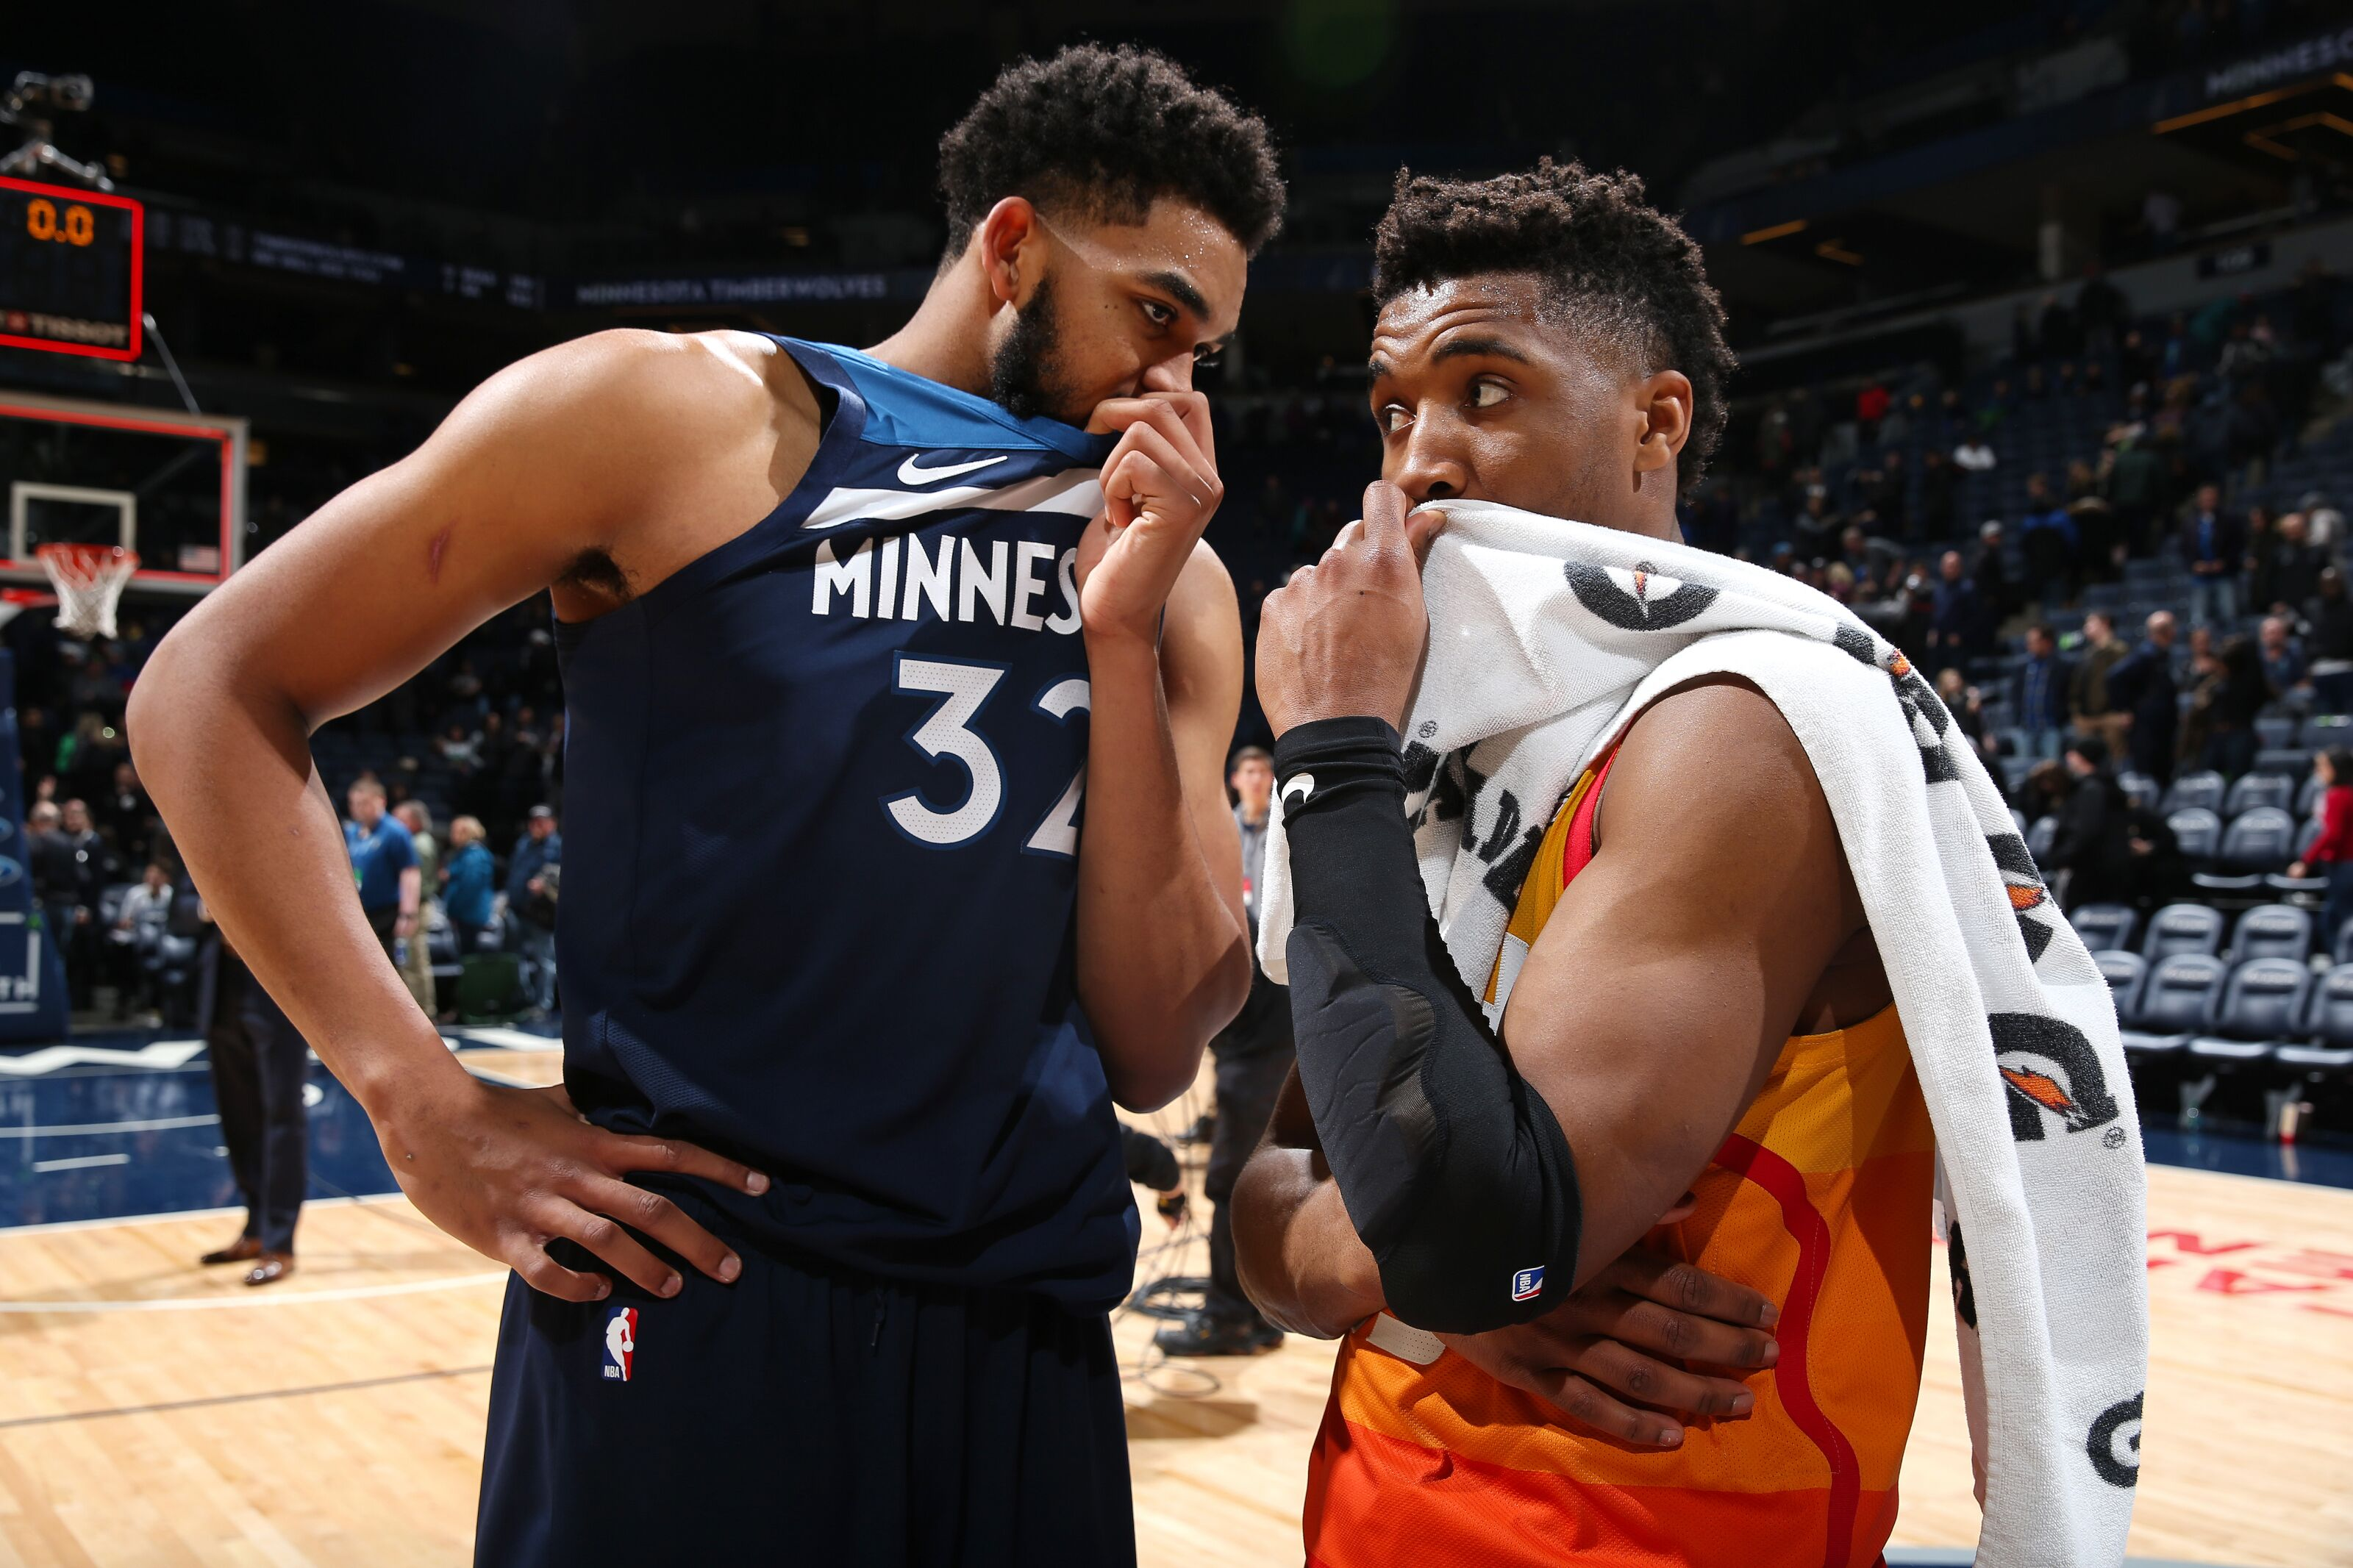 e775a38b6ab Utah Jazz: Maybe I'm crazy, but second Wolves win feels like a statement